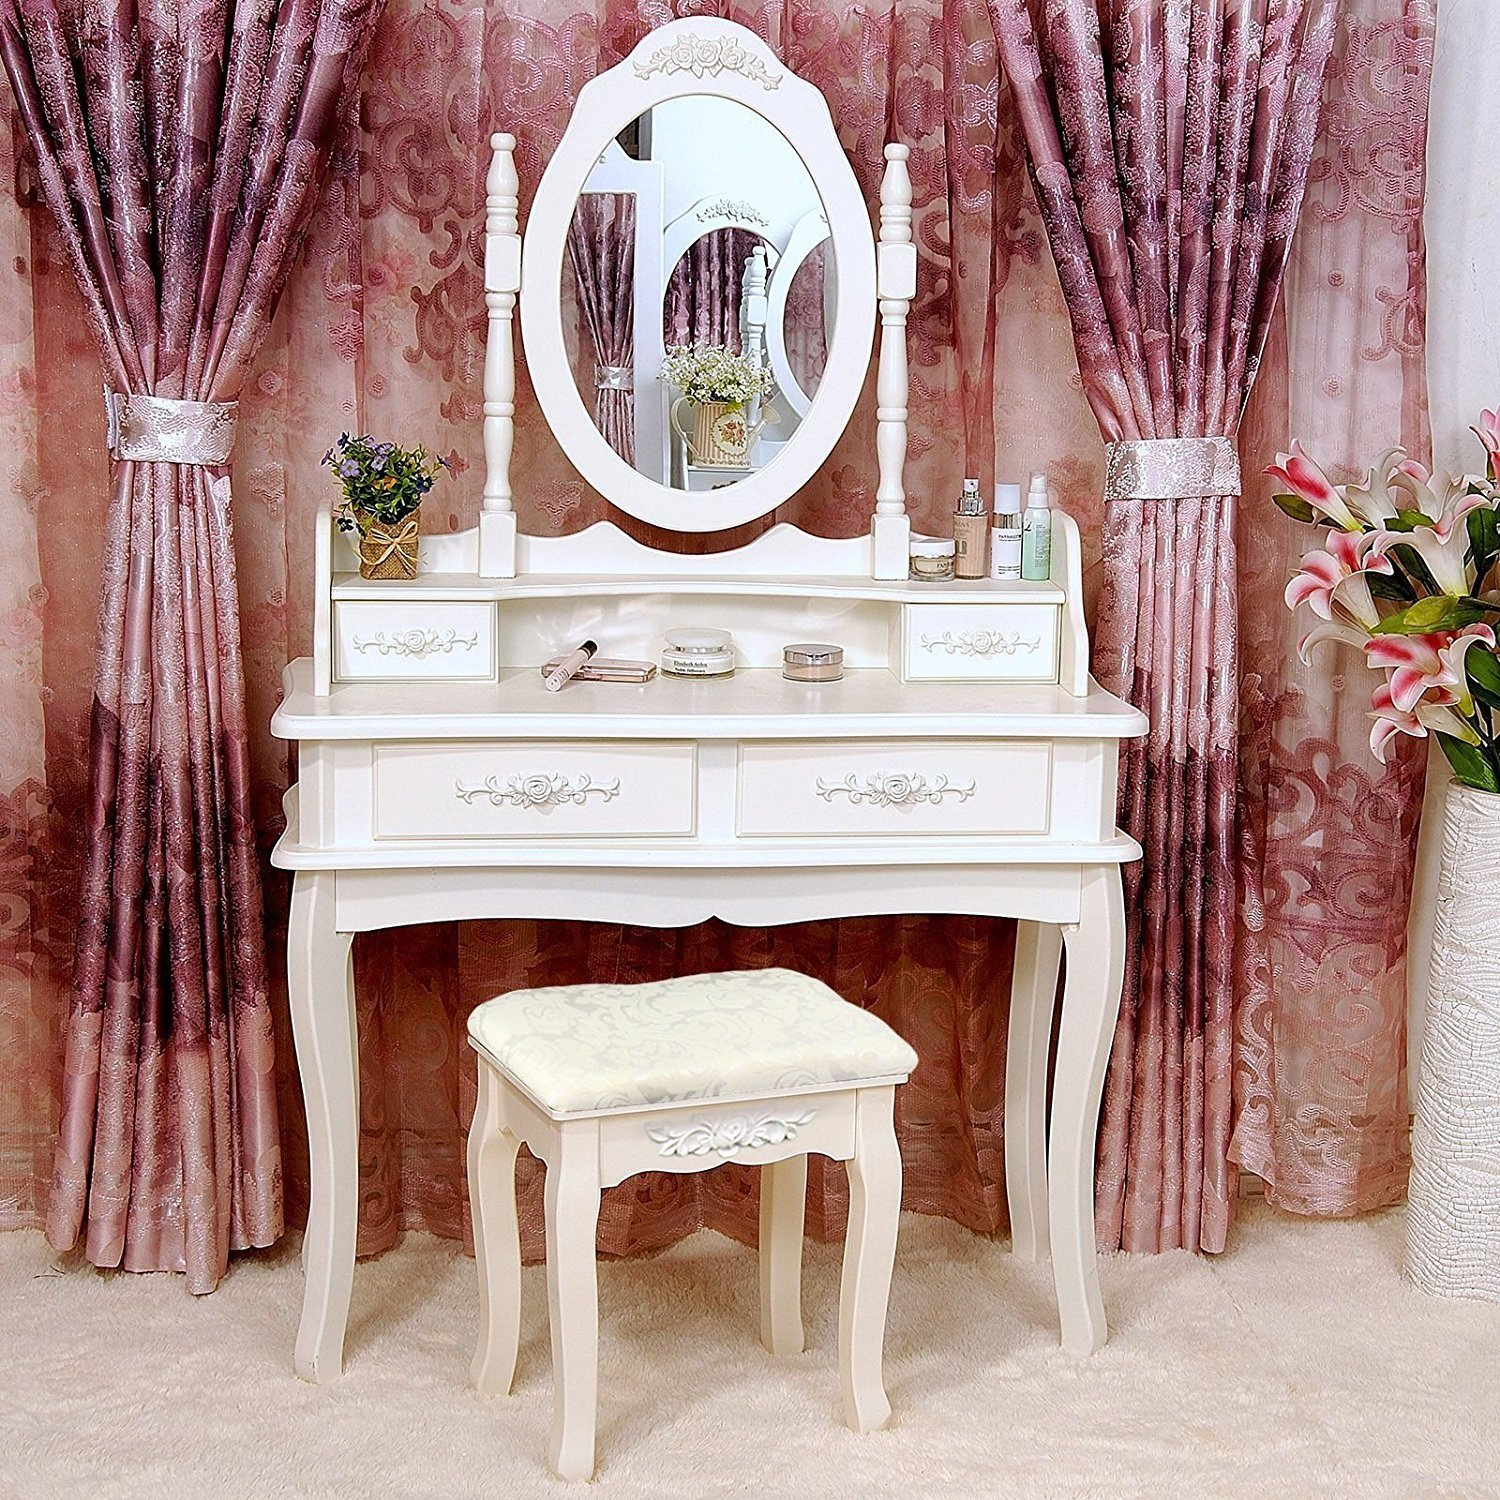 diy makeup mirror for in addition cheap lights of bathroom and bedrooms lighted ikea bench hollywood homemade woodworking beautiful plans teen bedroom top homes table gallery also vanities small to with build flip drawers how decor set vanity desk